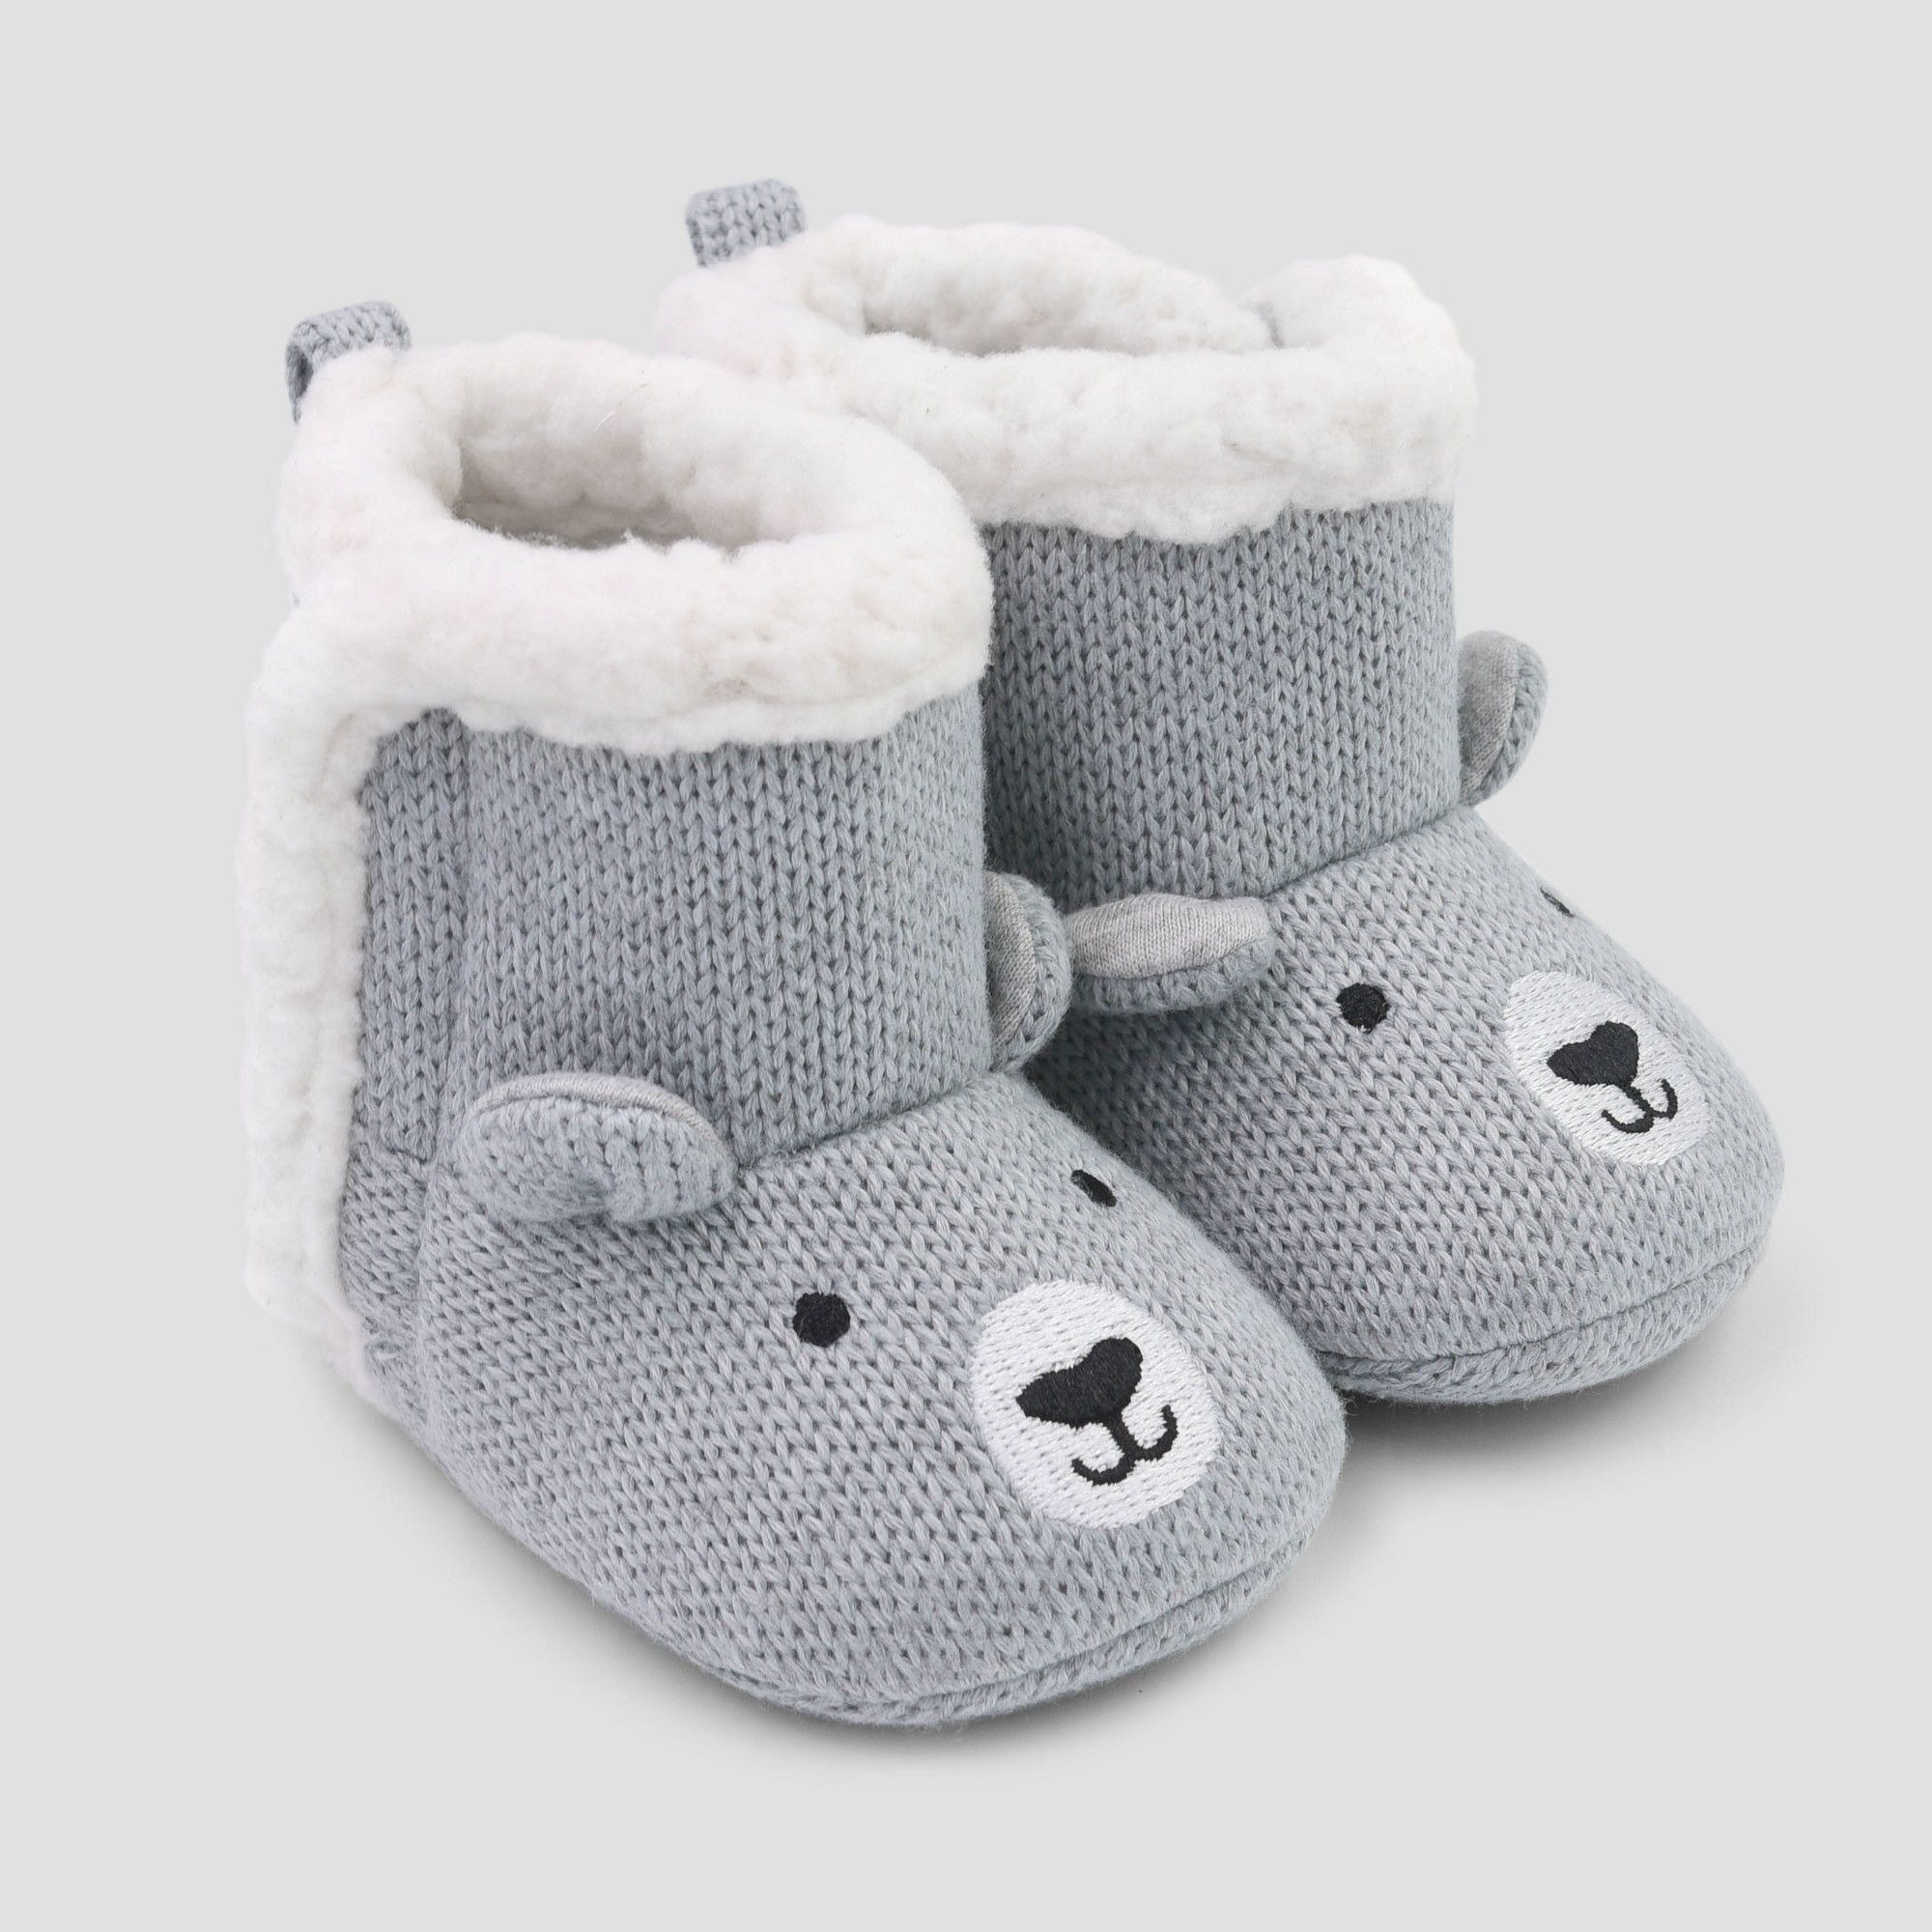 f2561ea61f82 Baby s Knit Bear Slipper - Just One You made by carter s Gray 0-3M ...